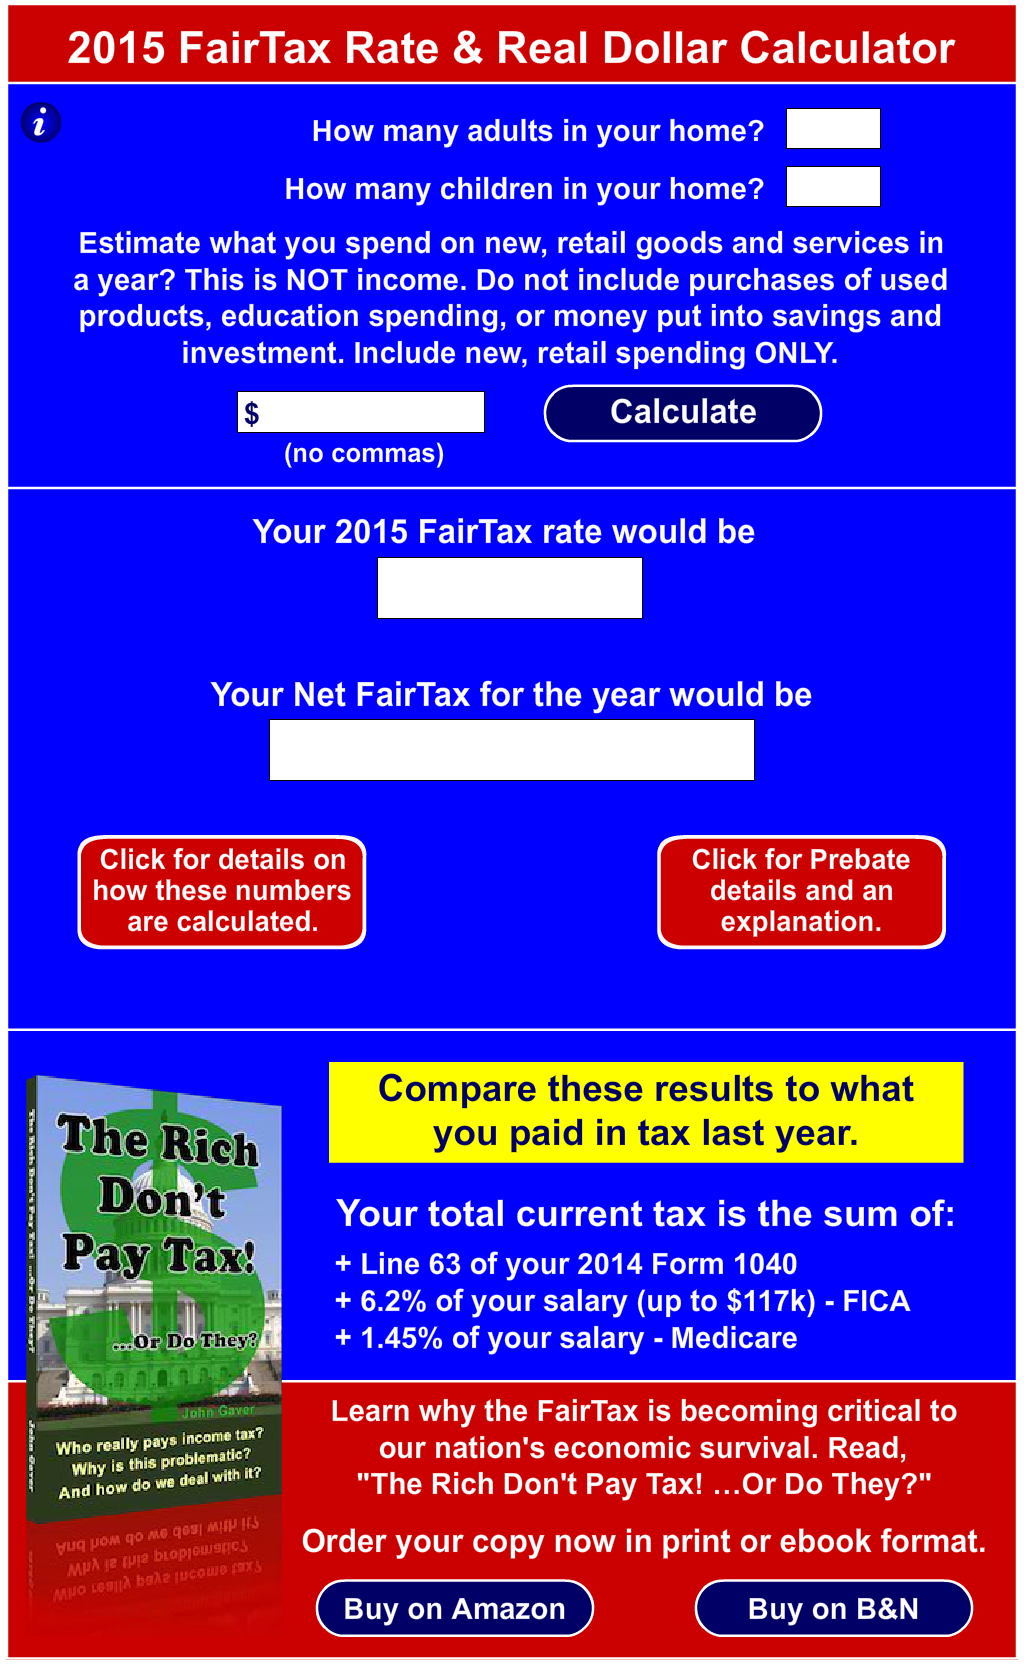 FairTax Rate and Real Dollar Calculator